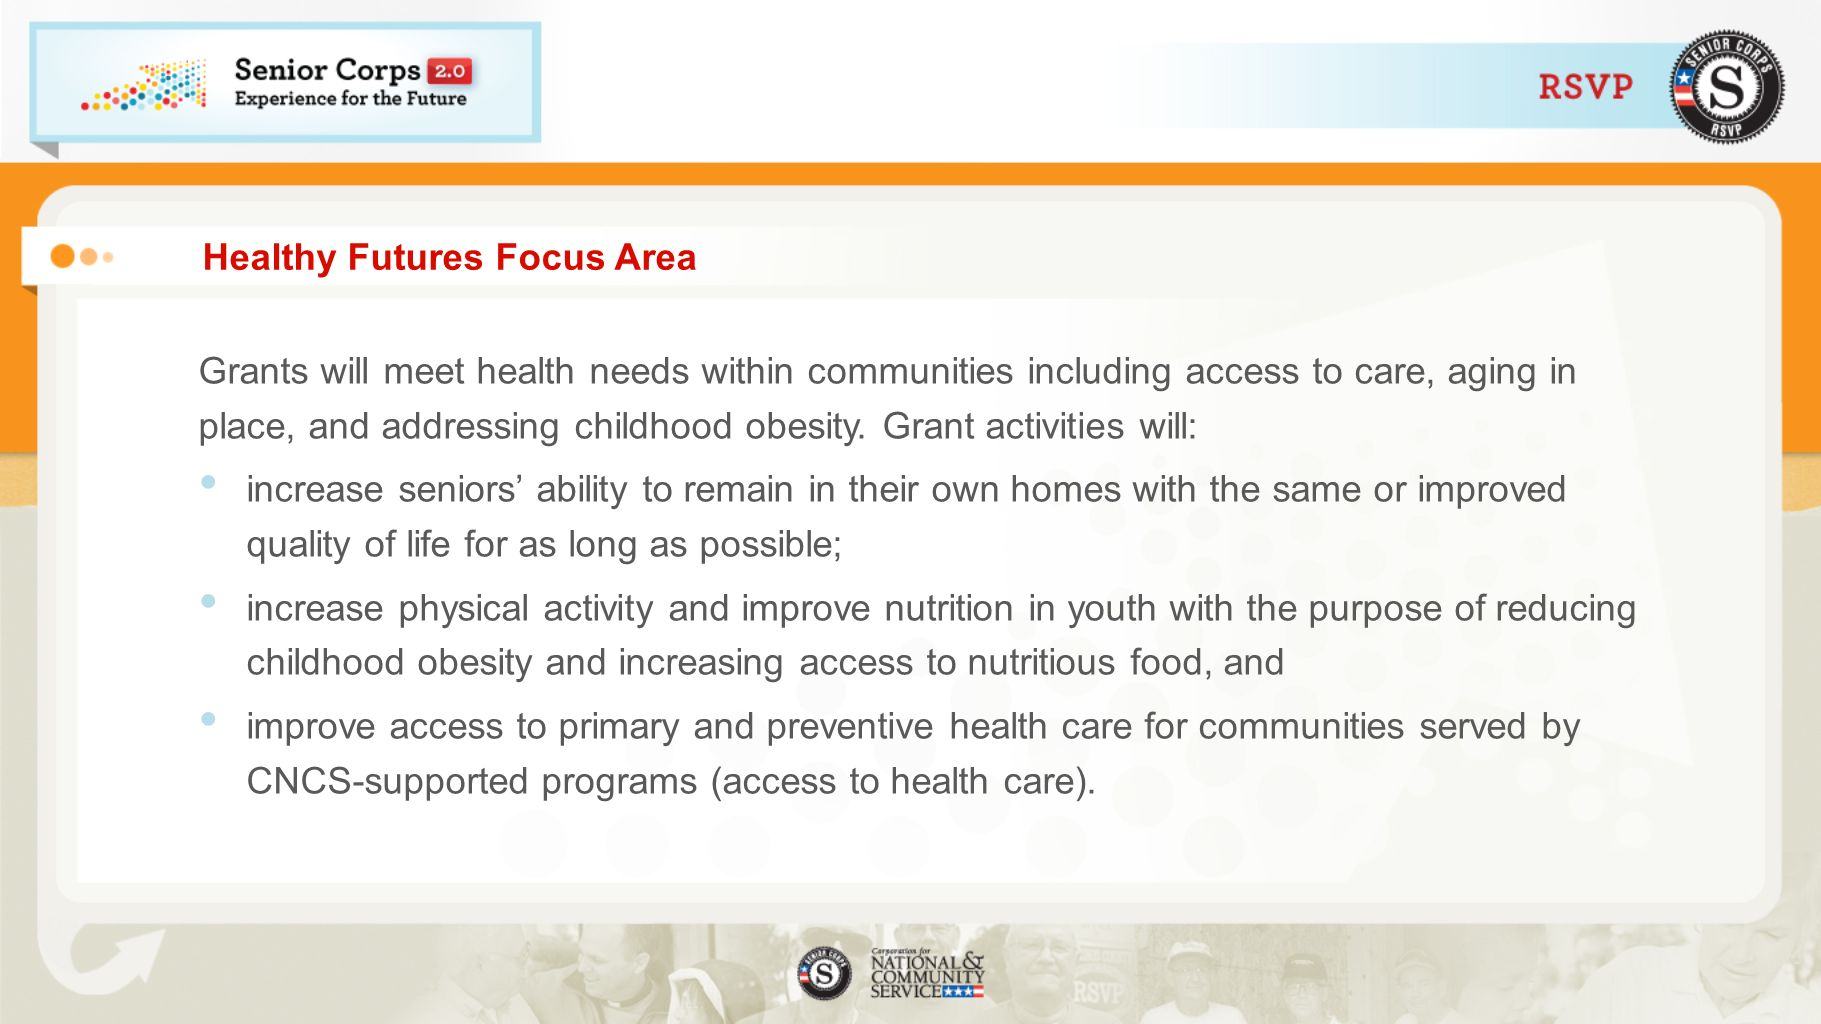 Healthy Futures Focus Area